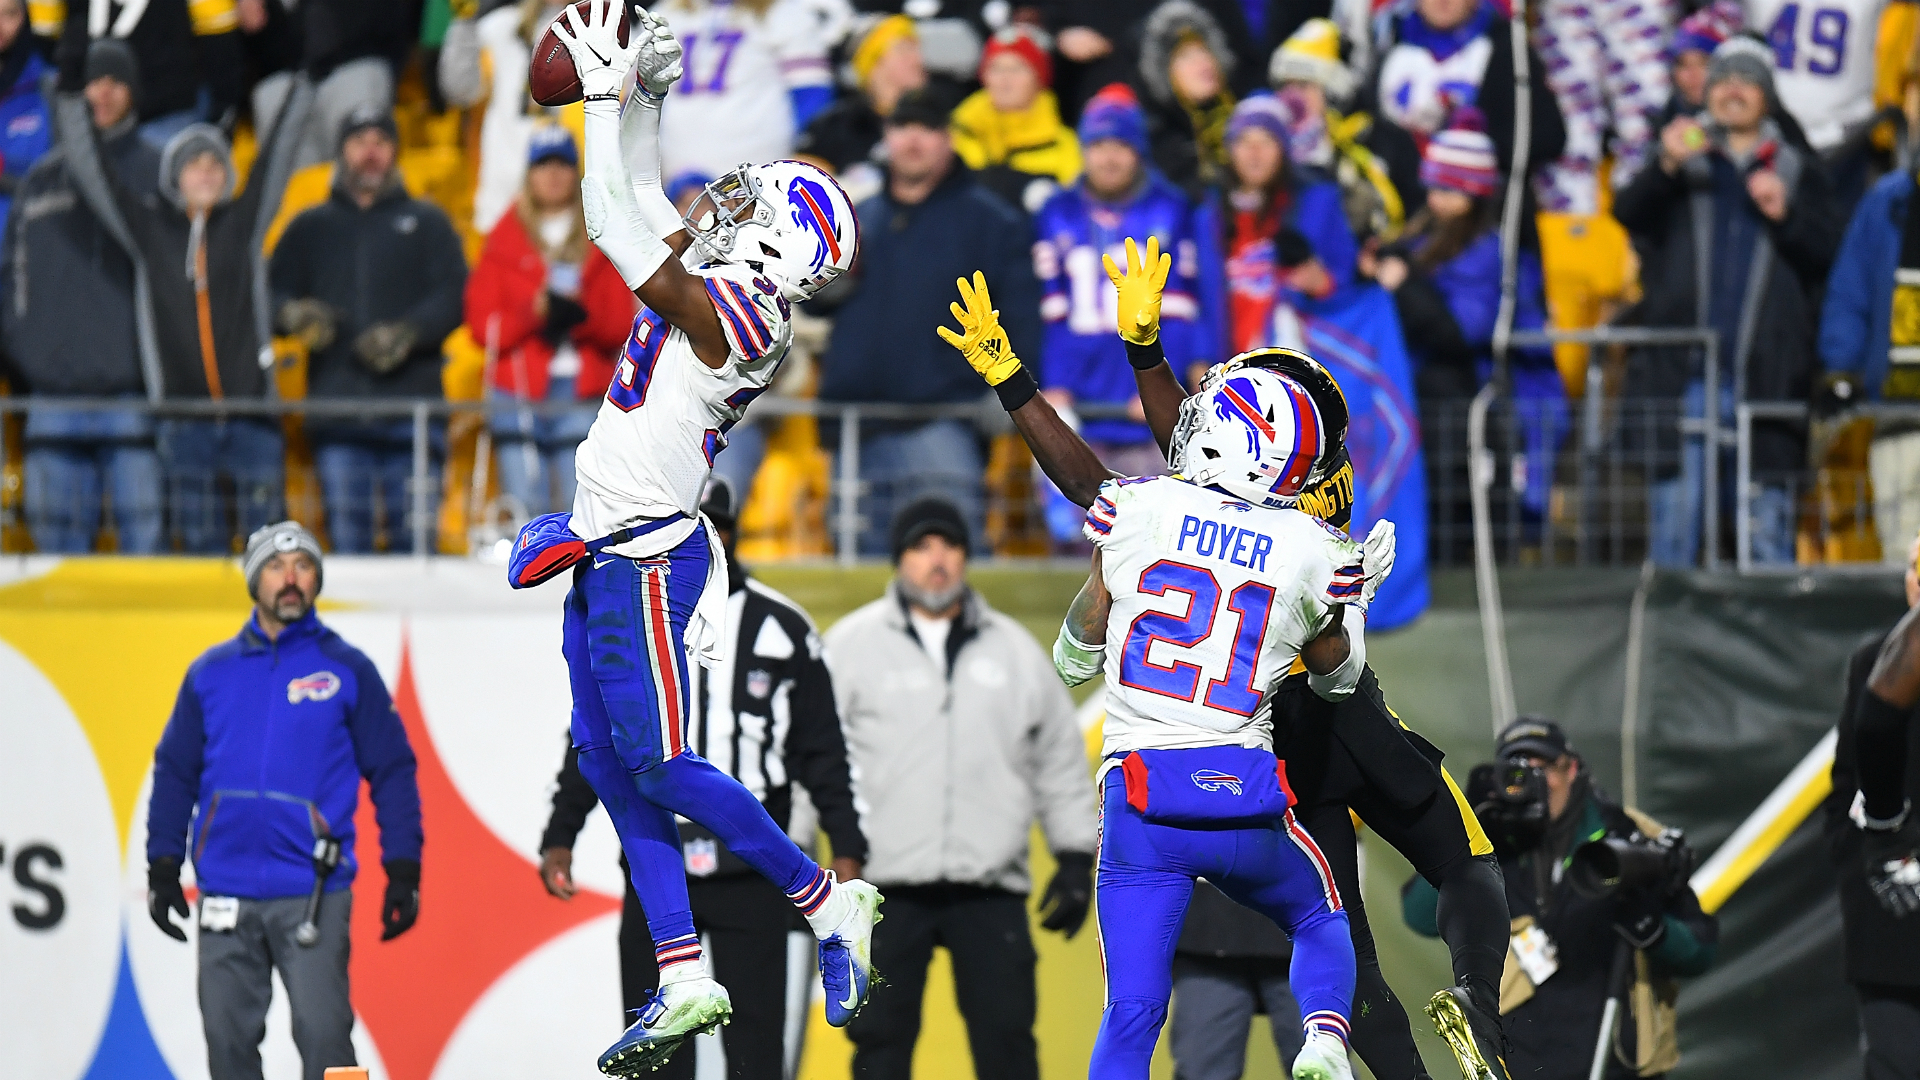 Steelers vs. Bills final score: Buffalo back in playoffs behind its star-studded secondary | Sporting News